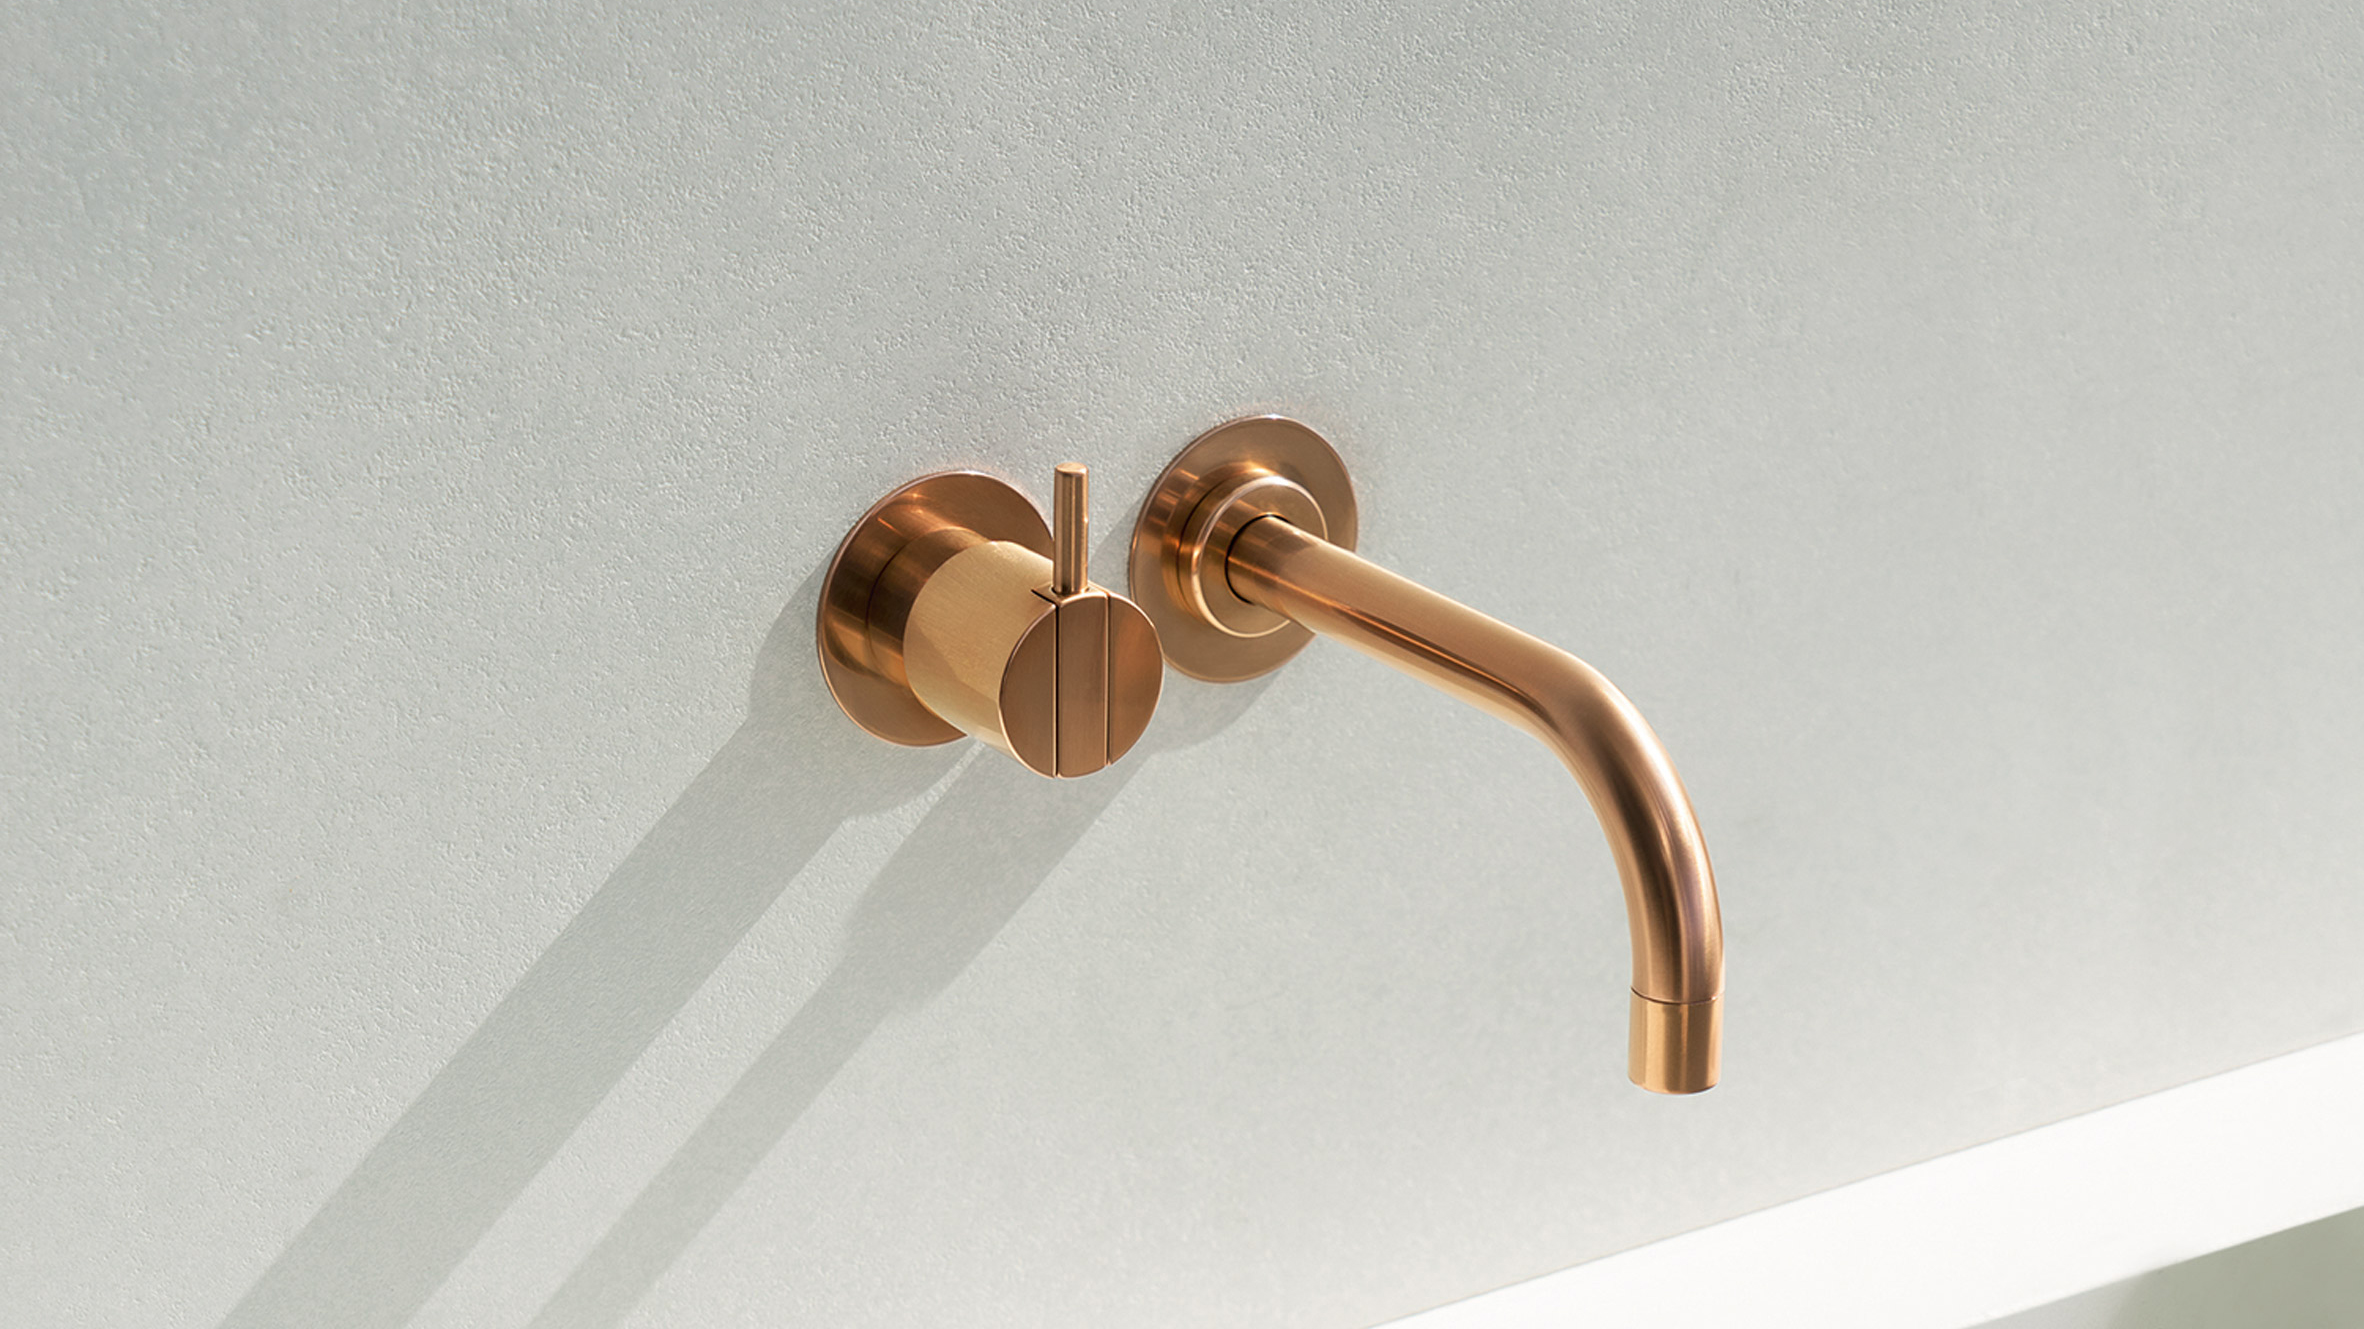 vola contemporary minimalist wall mount remote valve lav faucet with knob lever handle in rose gold with 90 degree spout - the ultimate guide to luxury plumbing by the delight of design